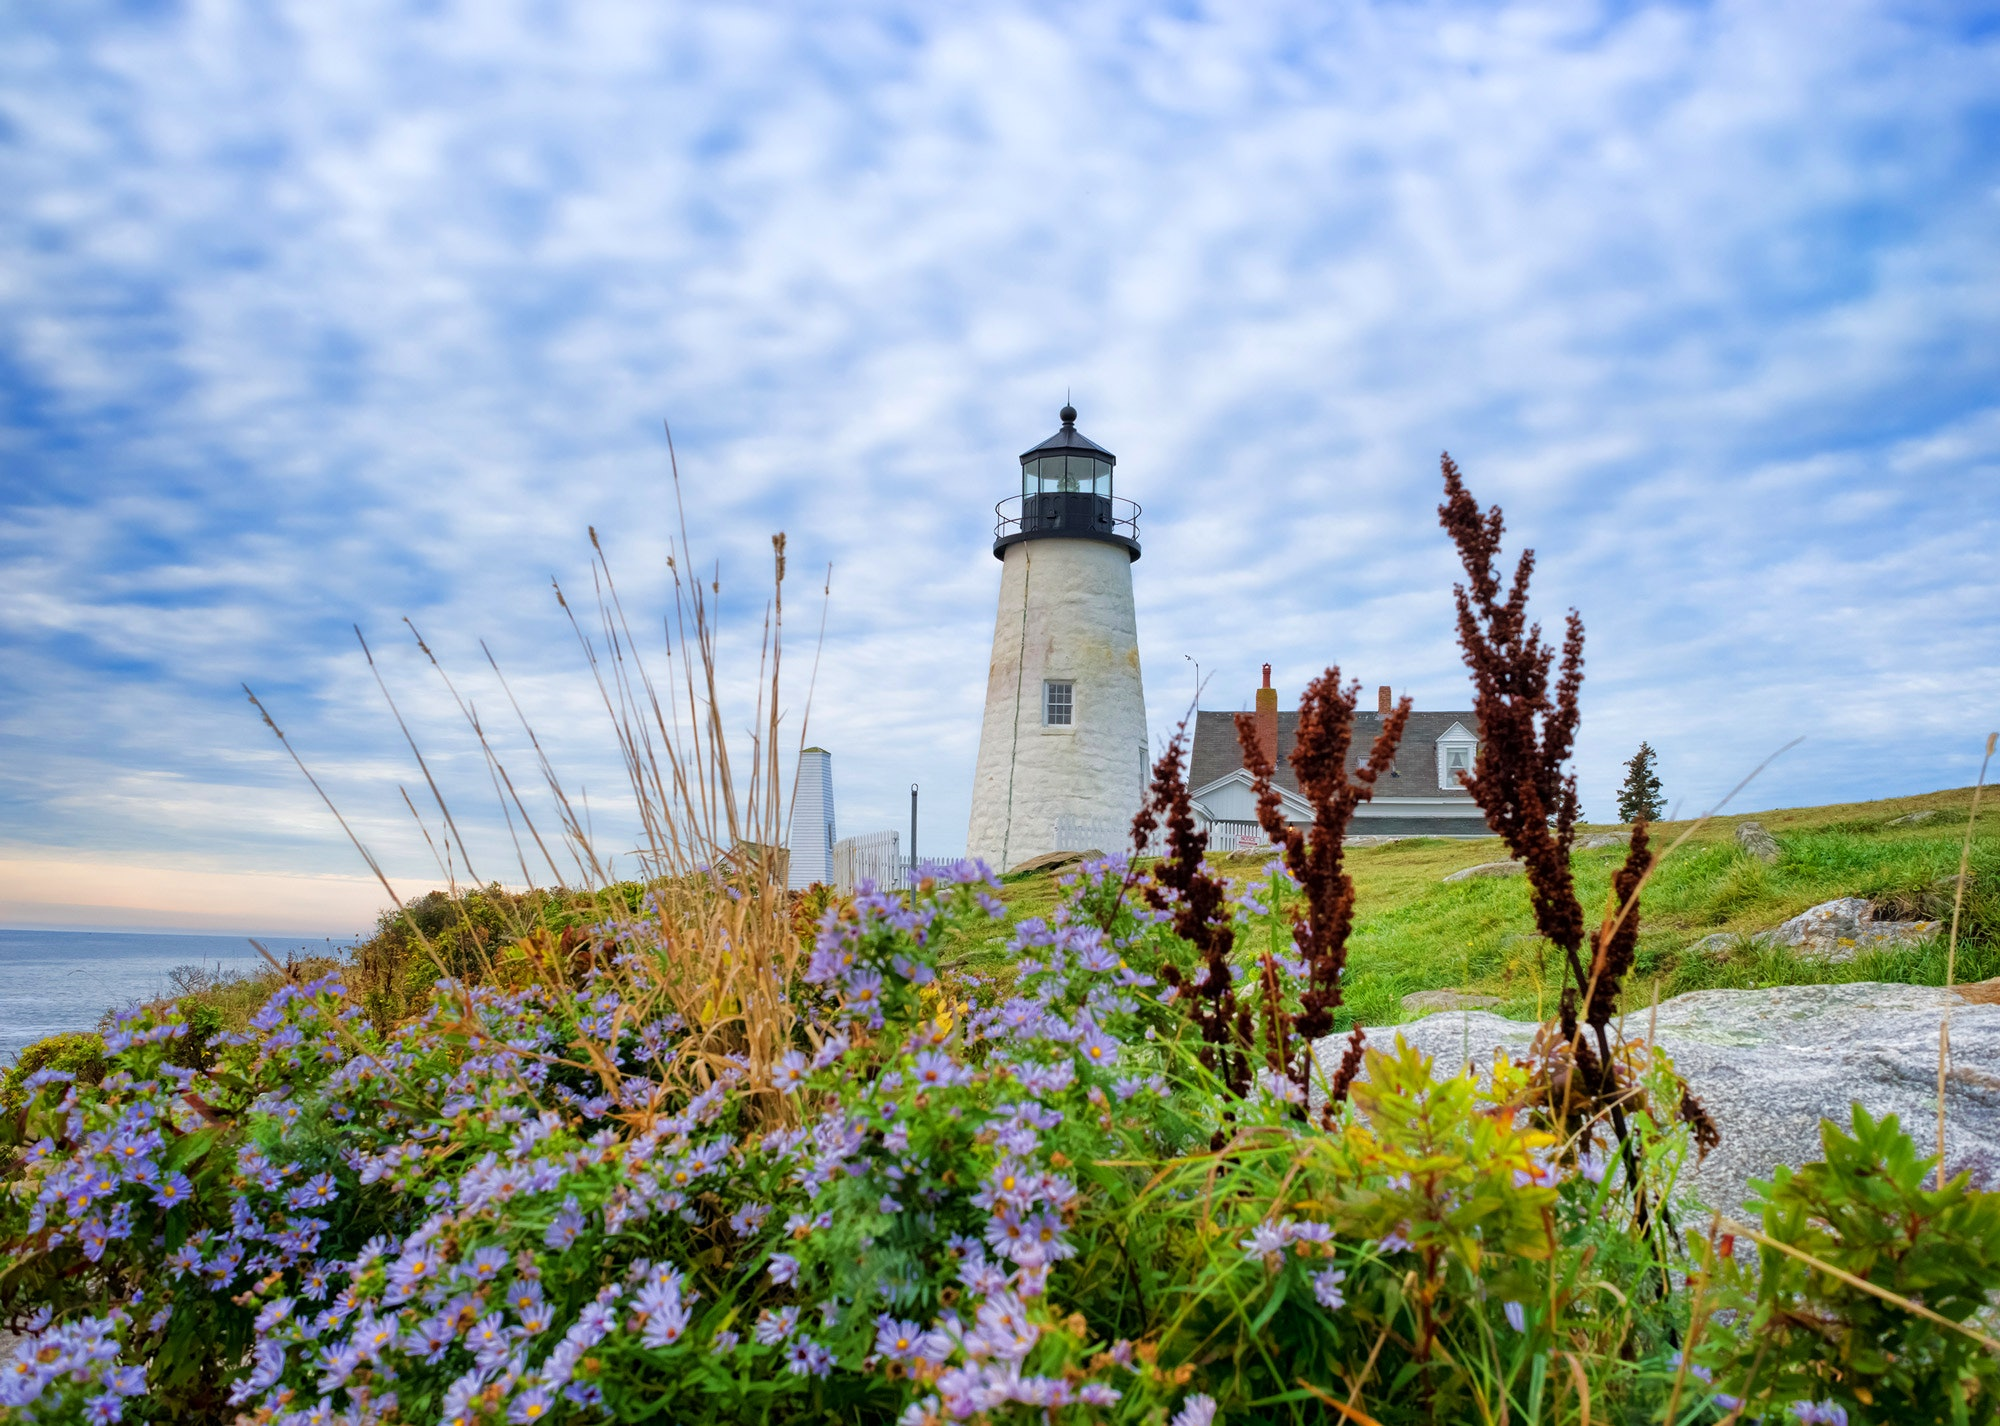 Midcoast Maine is picture-perfect coastal beauty © BW Folsom / Shutterstock